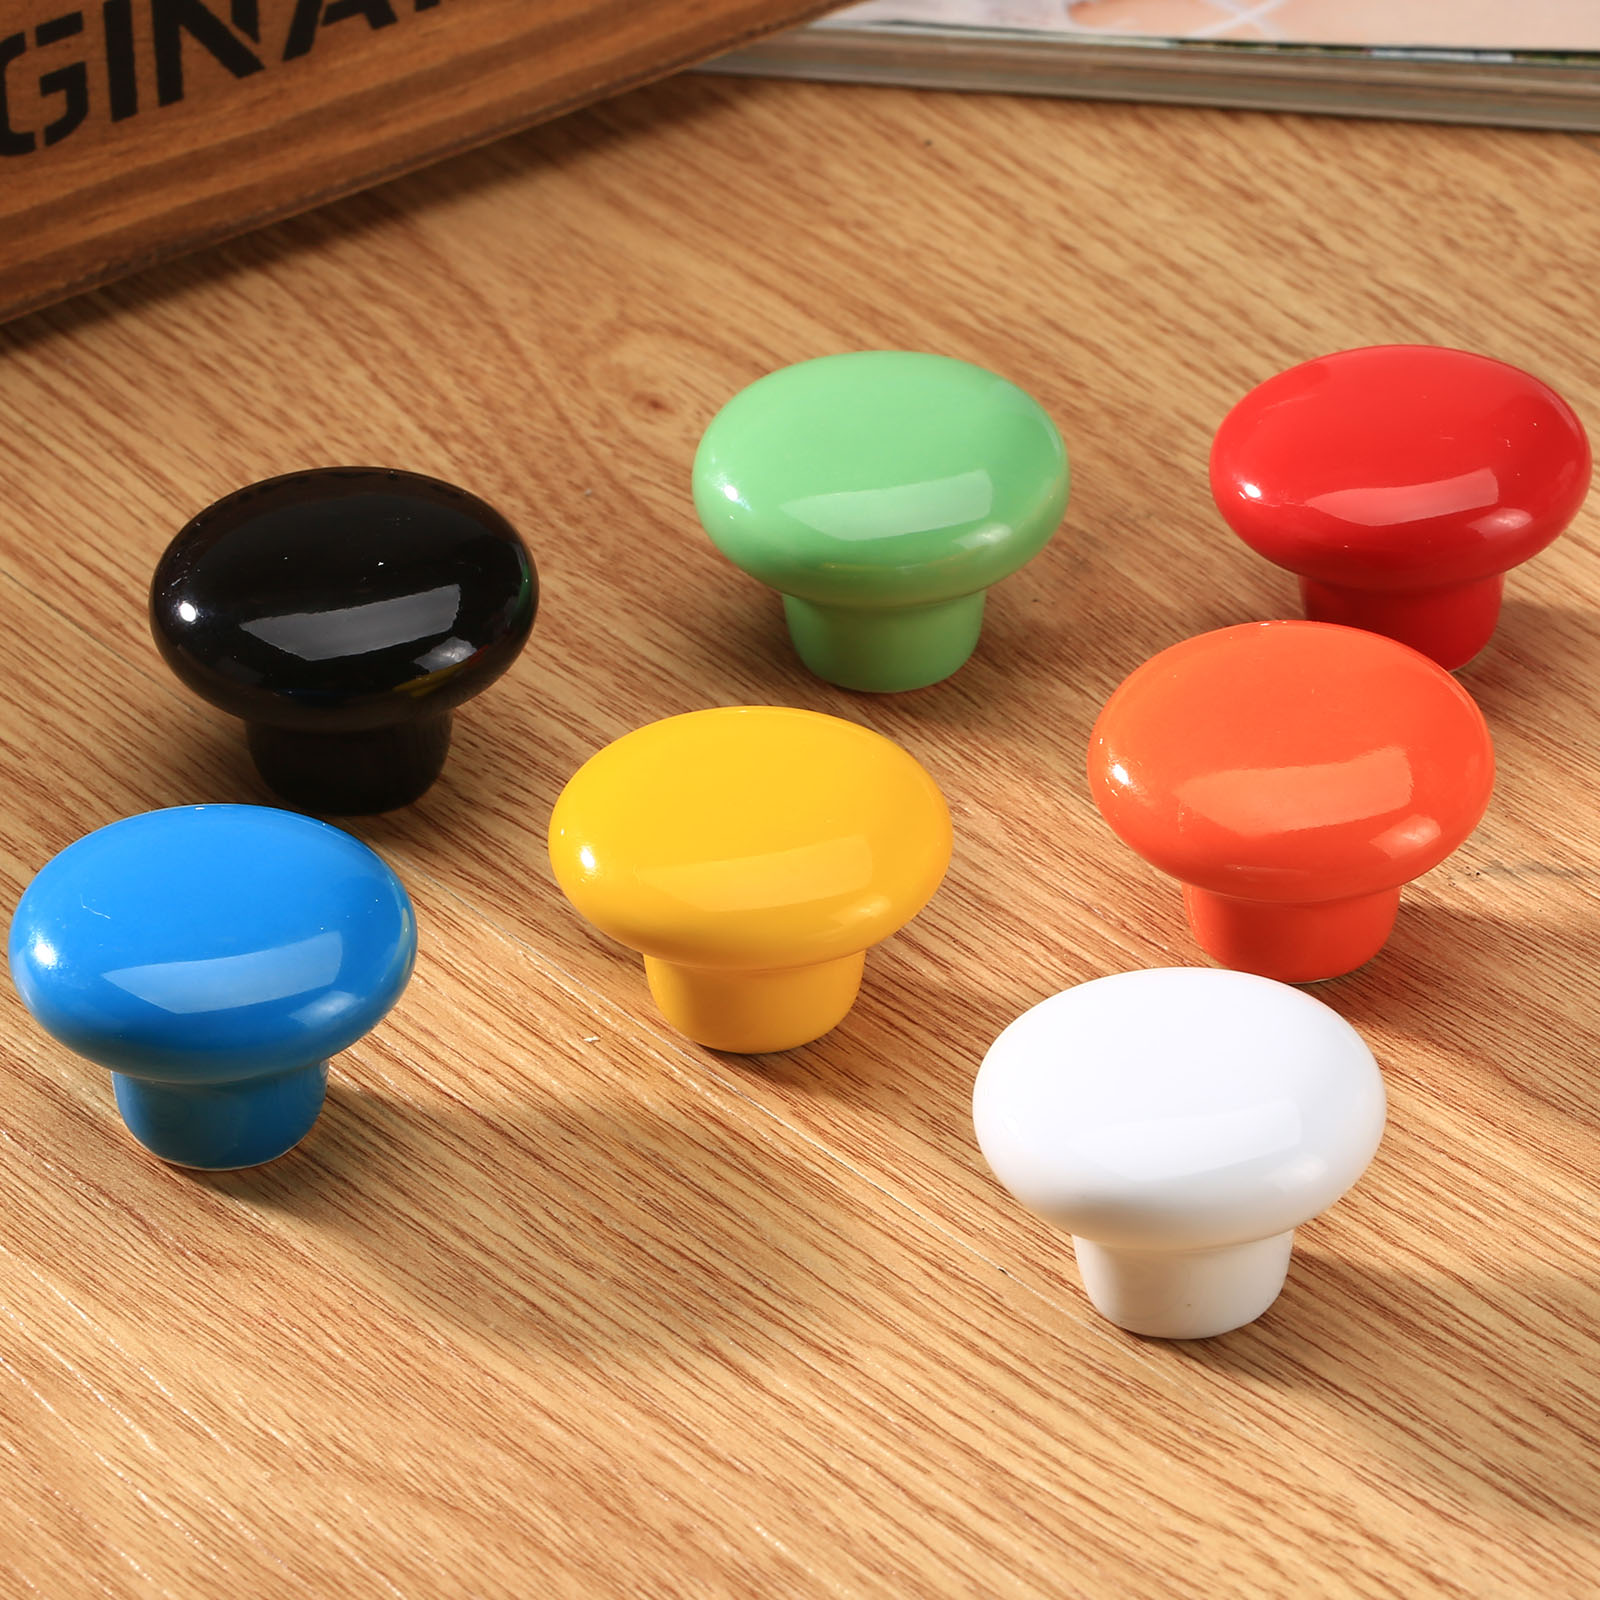 Candy Color Ceramic Round Pull Handle Cabinet Drawer Knob Home Kitchen Decor 1pc